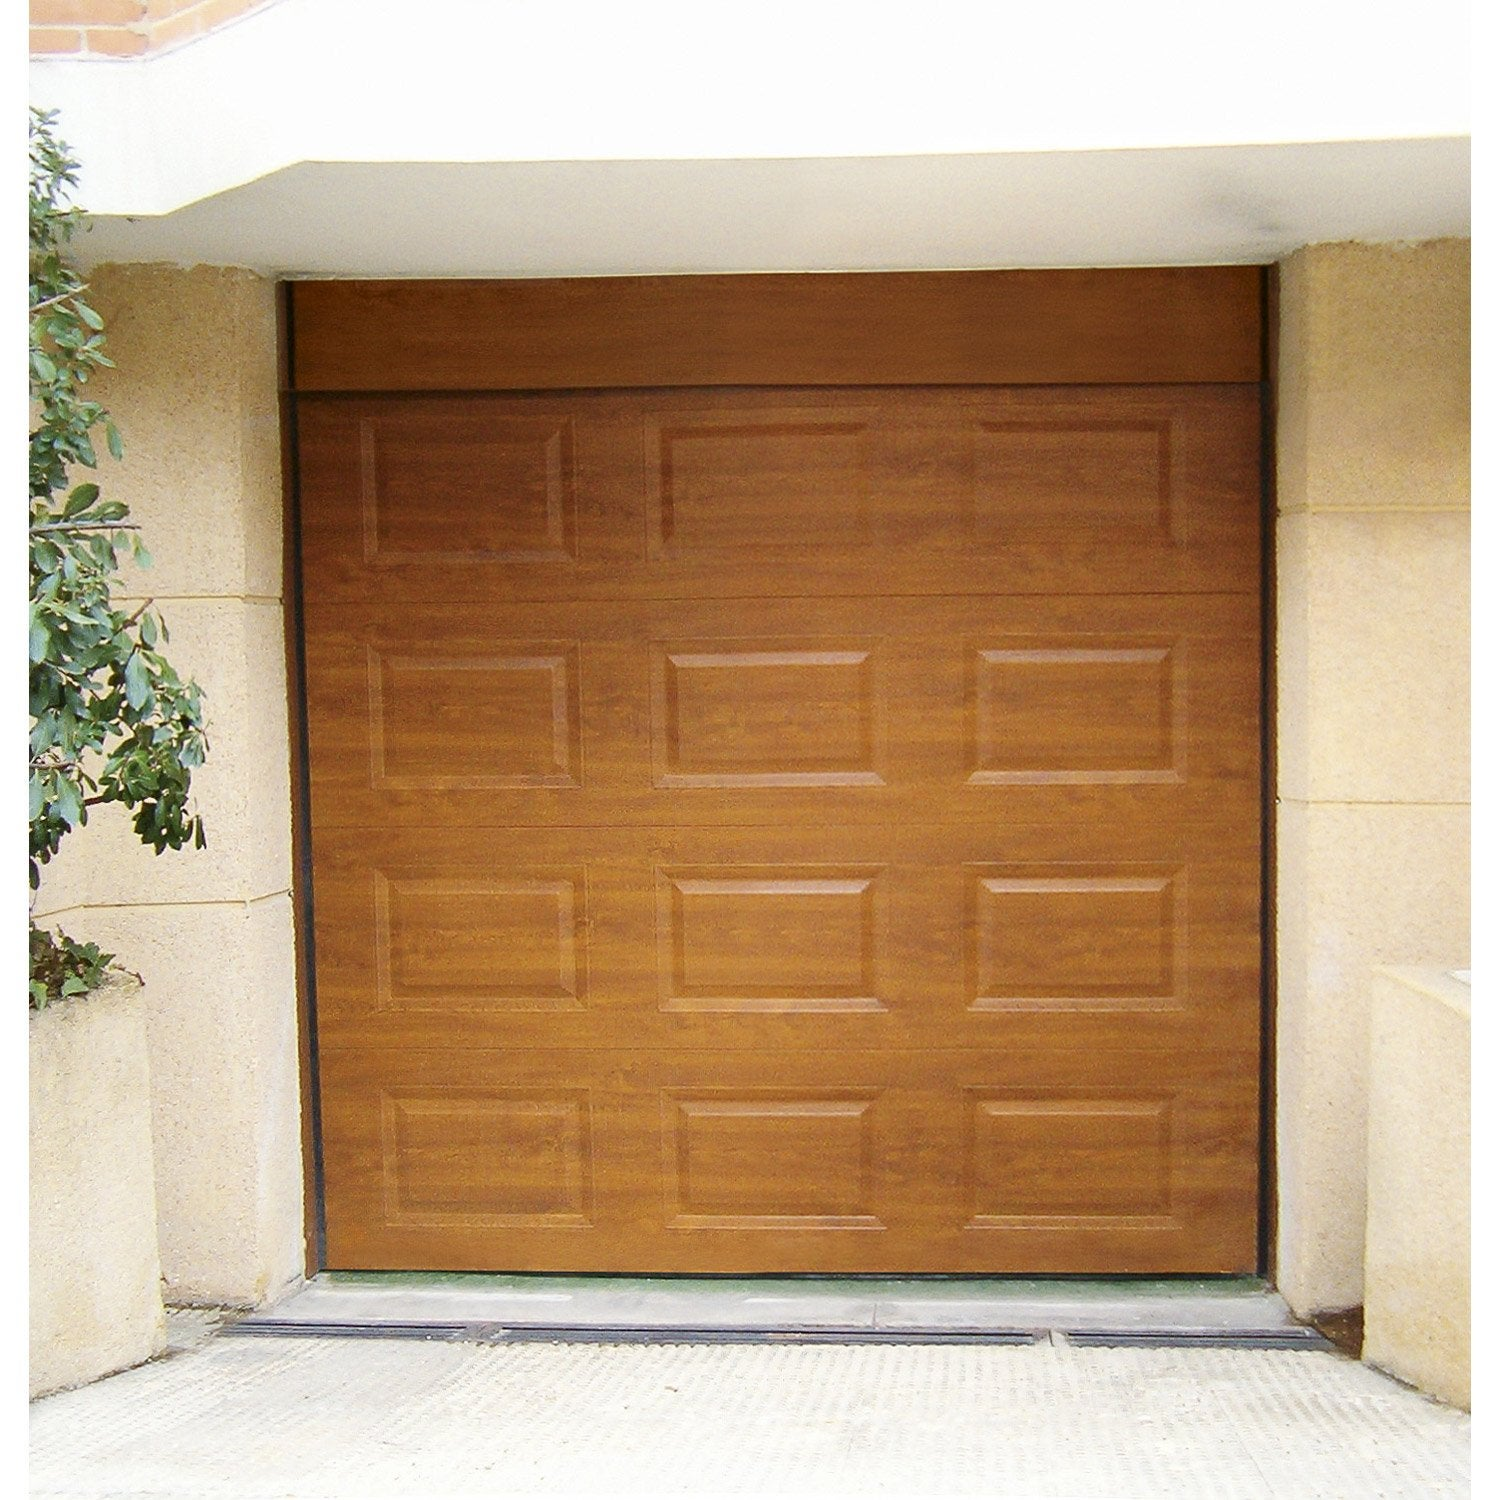 Porte de garage sectionnelle motoris e artens cassette - Leroy merlin porte de garage sectionnelle motorisee ...